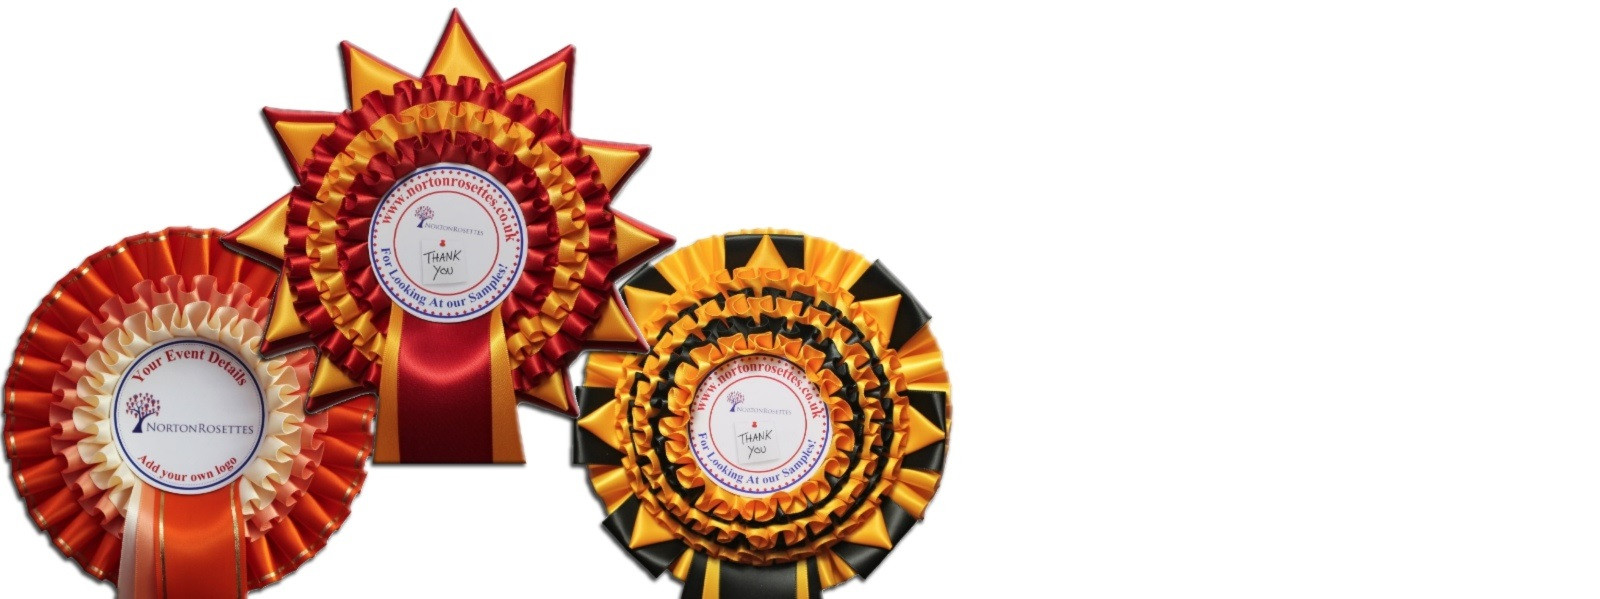 Worldwide shipping on all of our rosettes